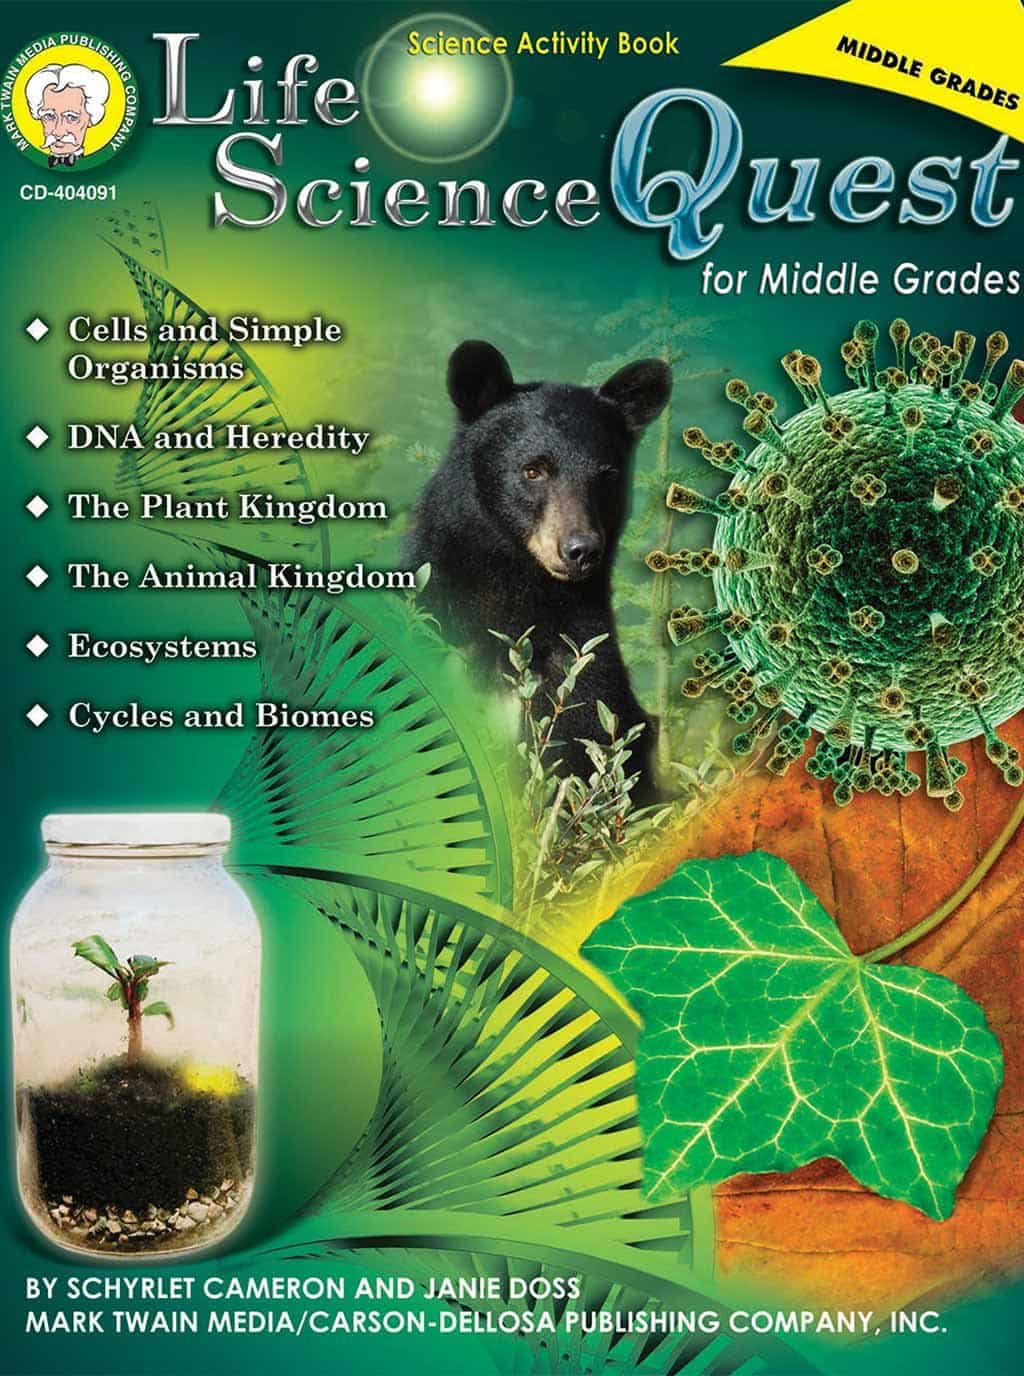 Life Science Quest for Middle Grades cover for Science Shepherd Homeschool Curriculum